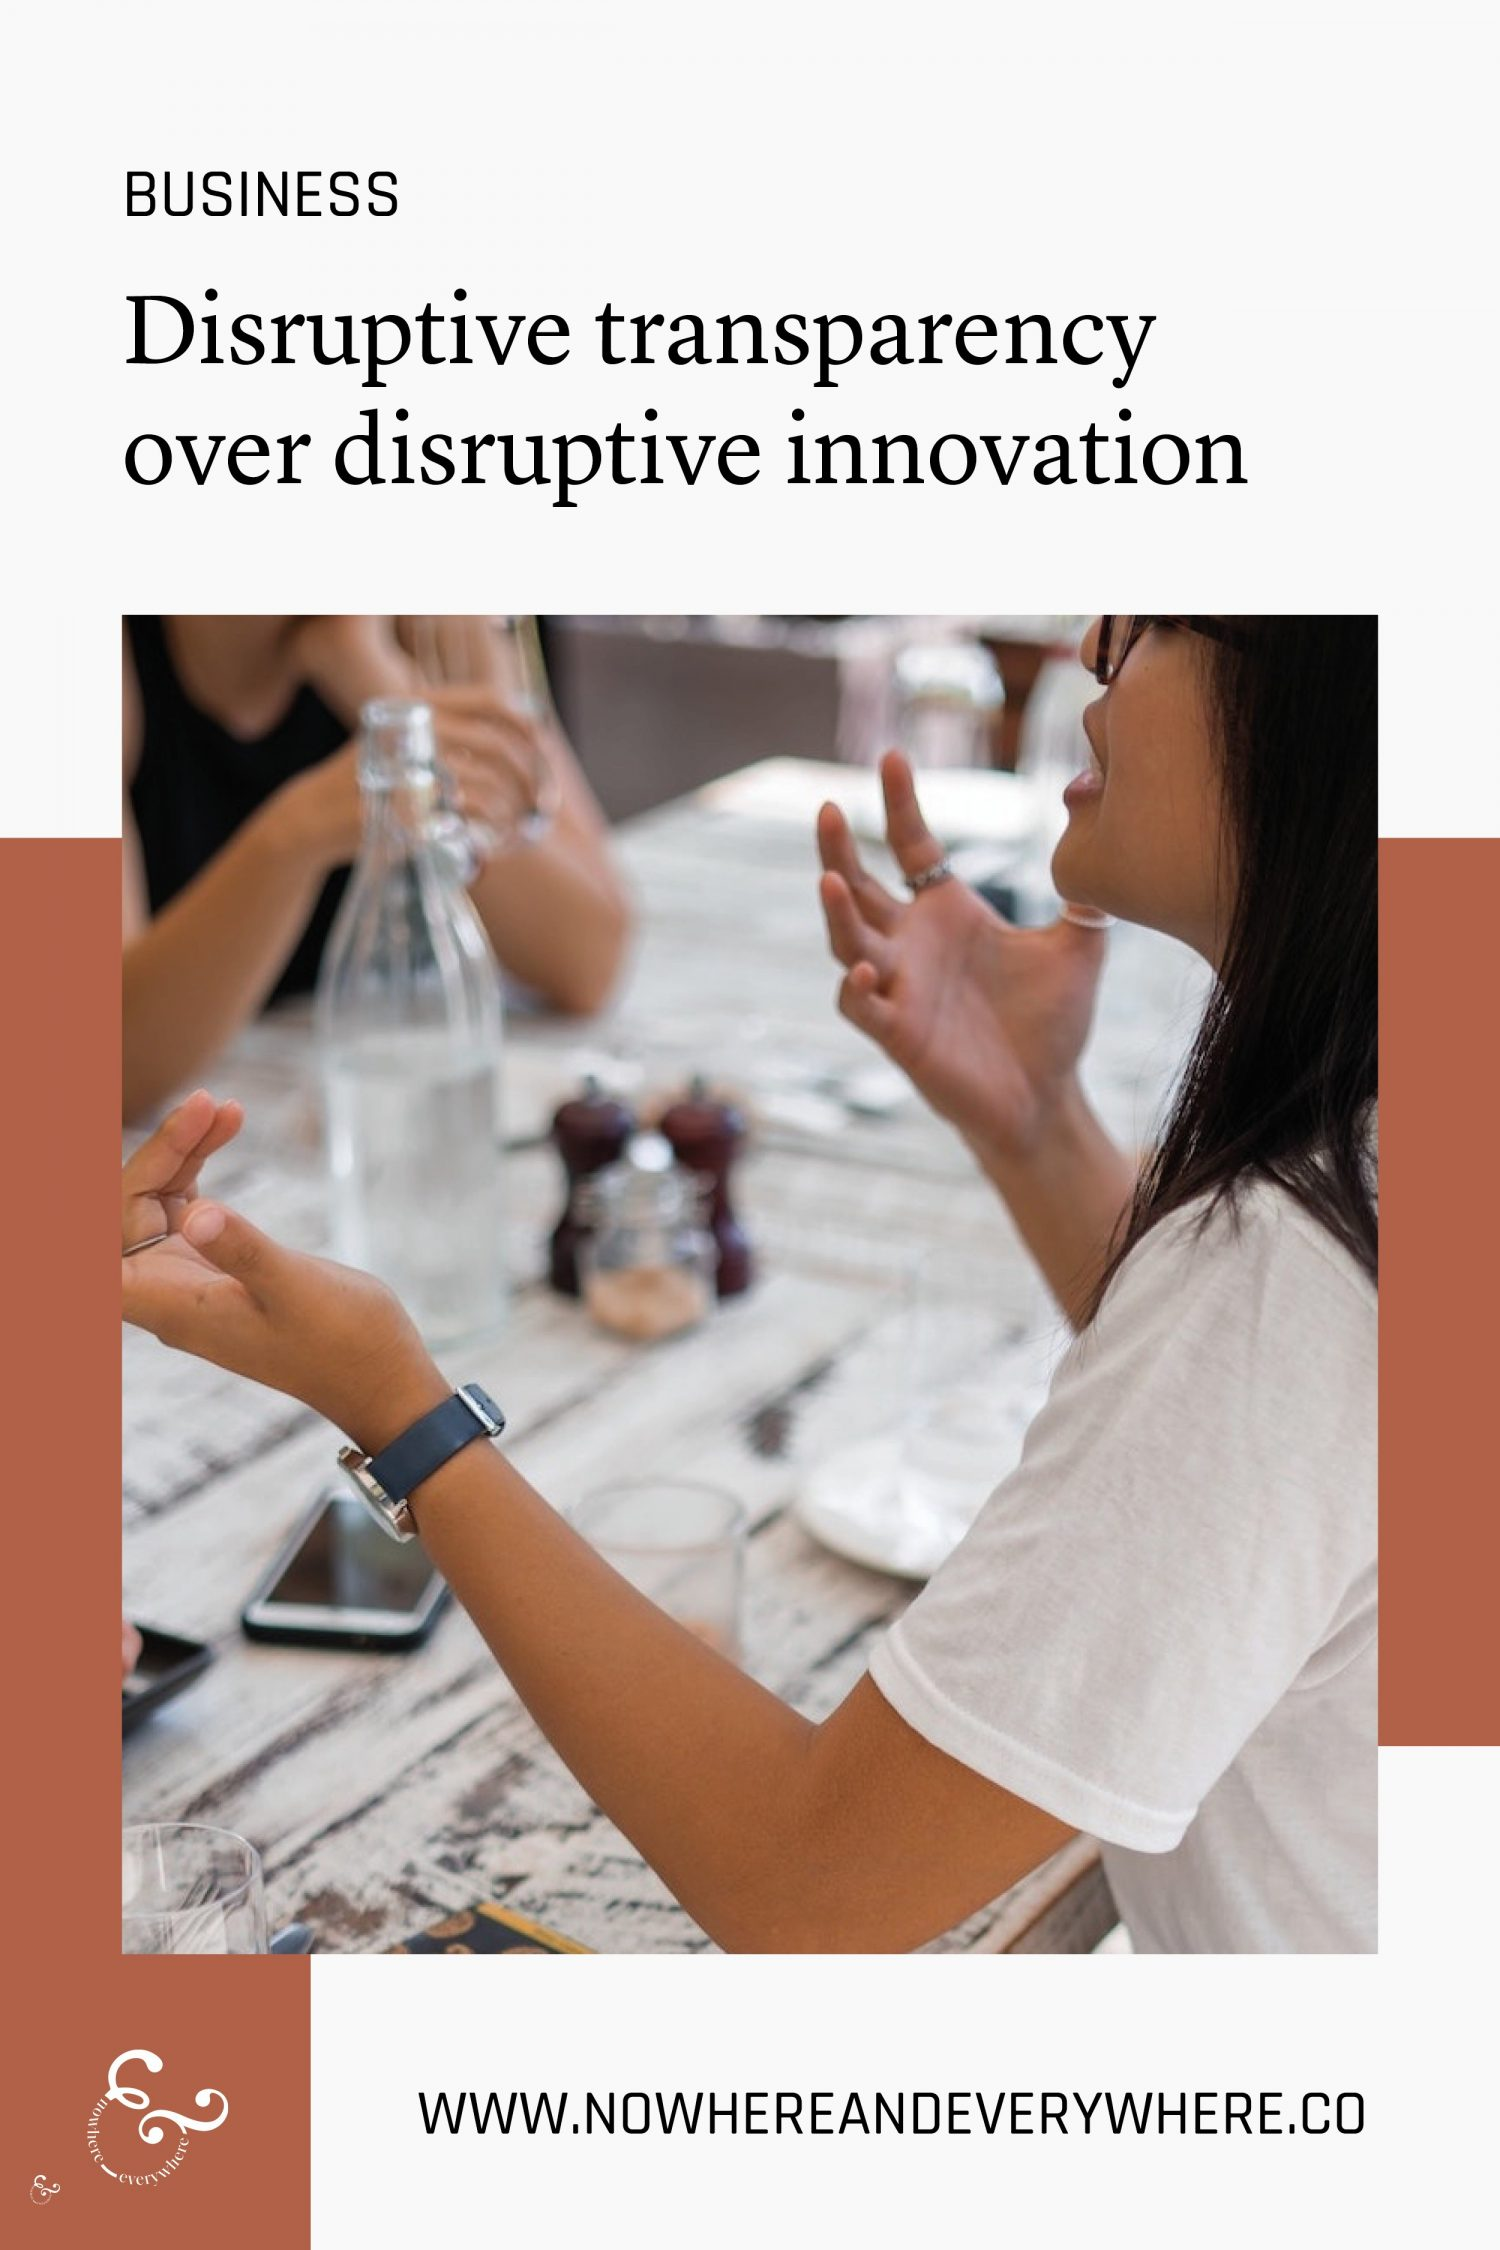 Don't give me disruptive innovation; give me disruptive transparency Nowhere & Everywhere Sustainable Travel